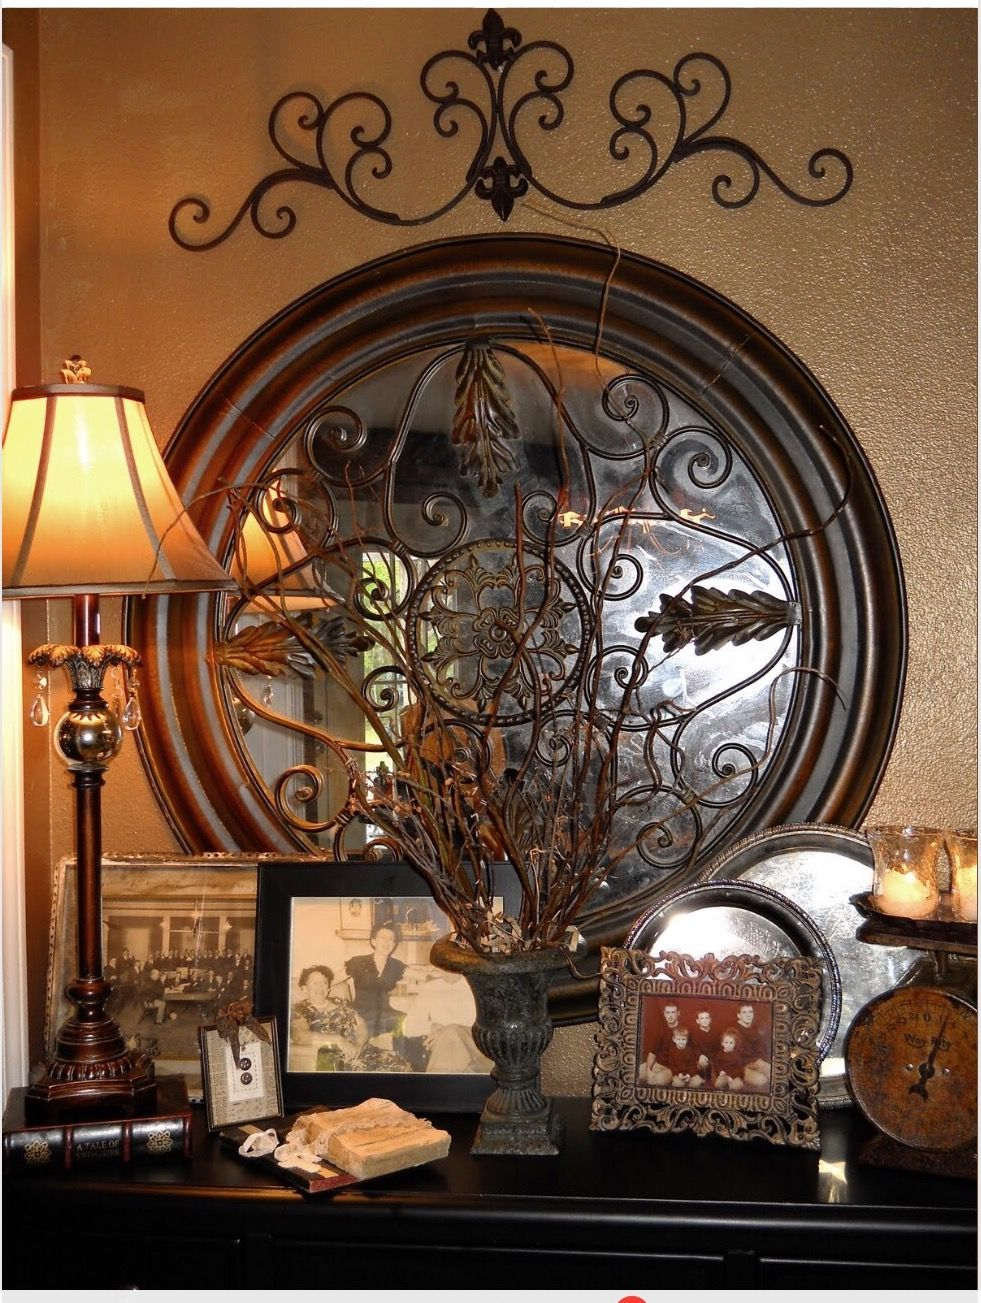 Pin By Maryann On Vignettes Tuscan Wall Decor Tuscan Decorating Tuscany Decor